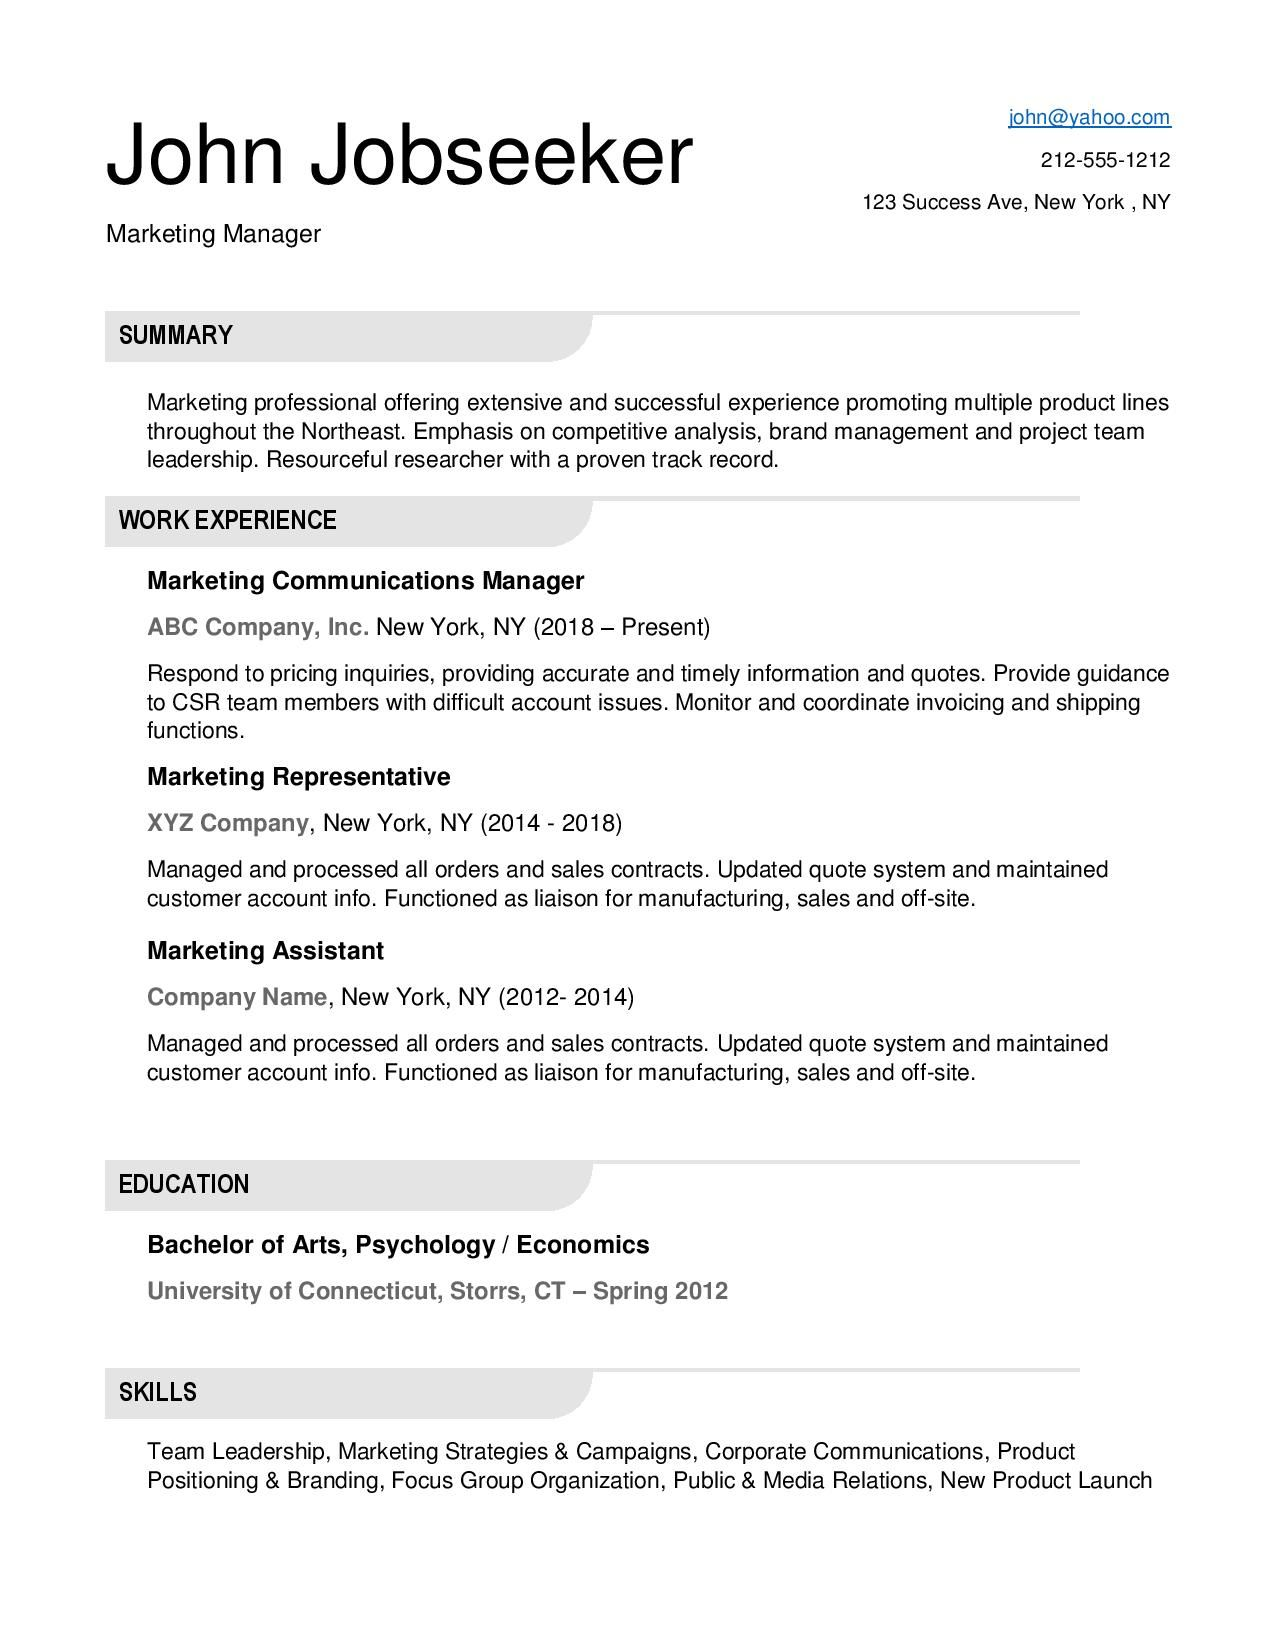 Need A New Job Resume Downloads One page resume, One